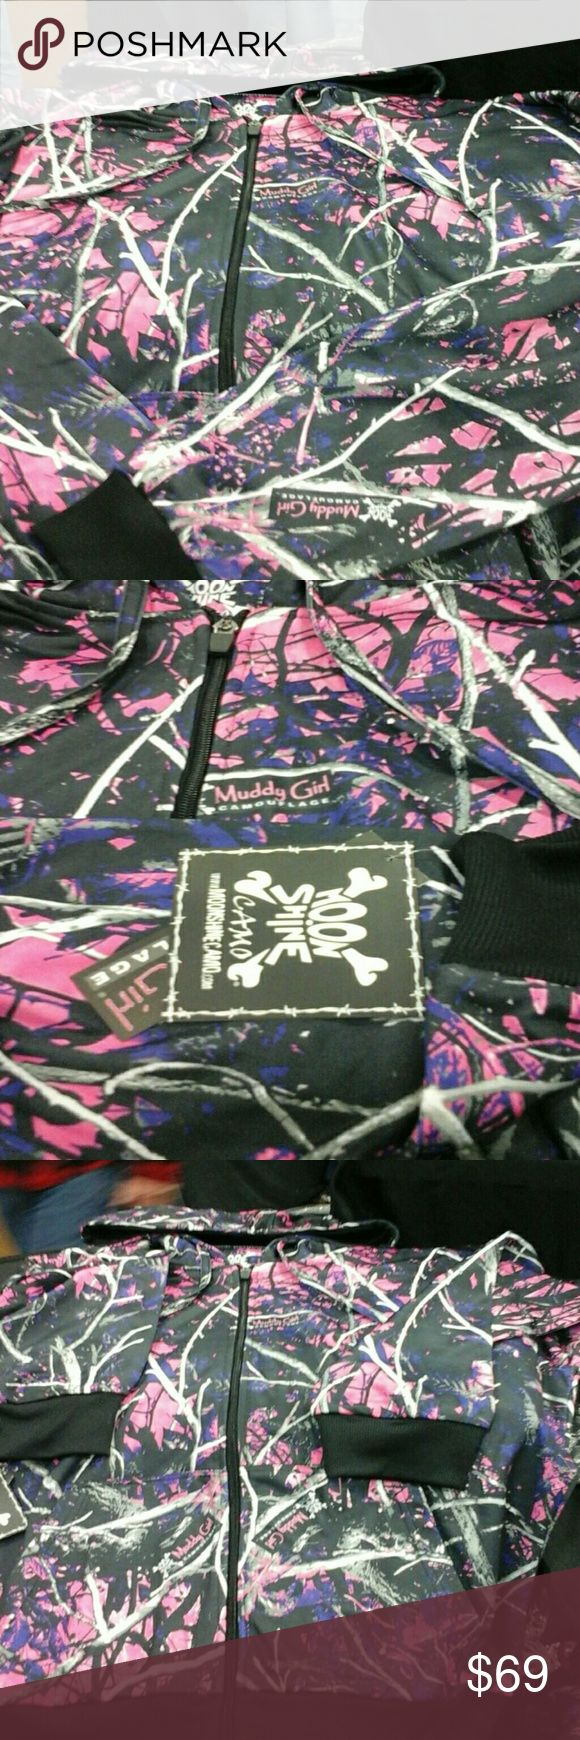 Muddy  girl  full  camouflage  hoodie Pink and  purple  camo  hoodie, waterproof  and  has  wicking  material  on  the  inside moonshine  camo   Jackets & Coats